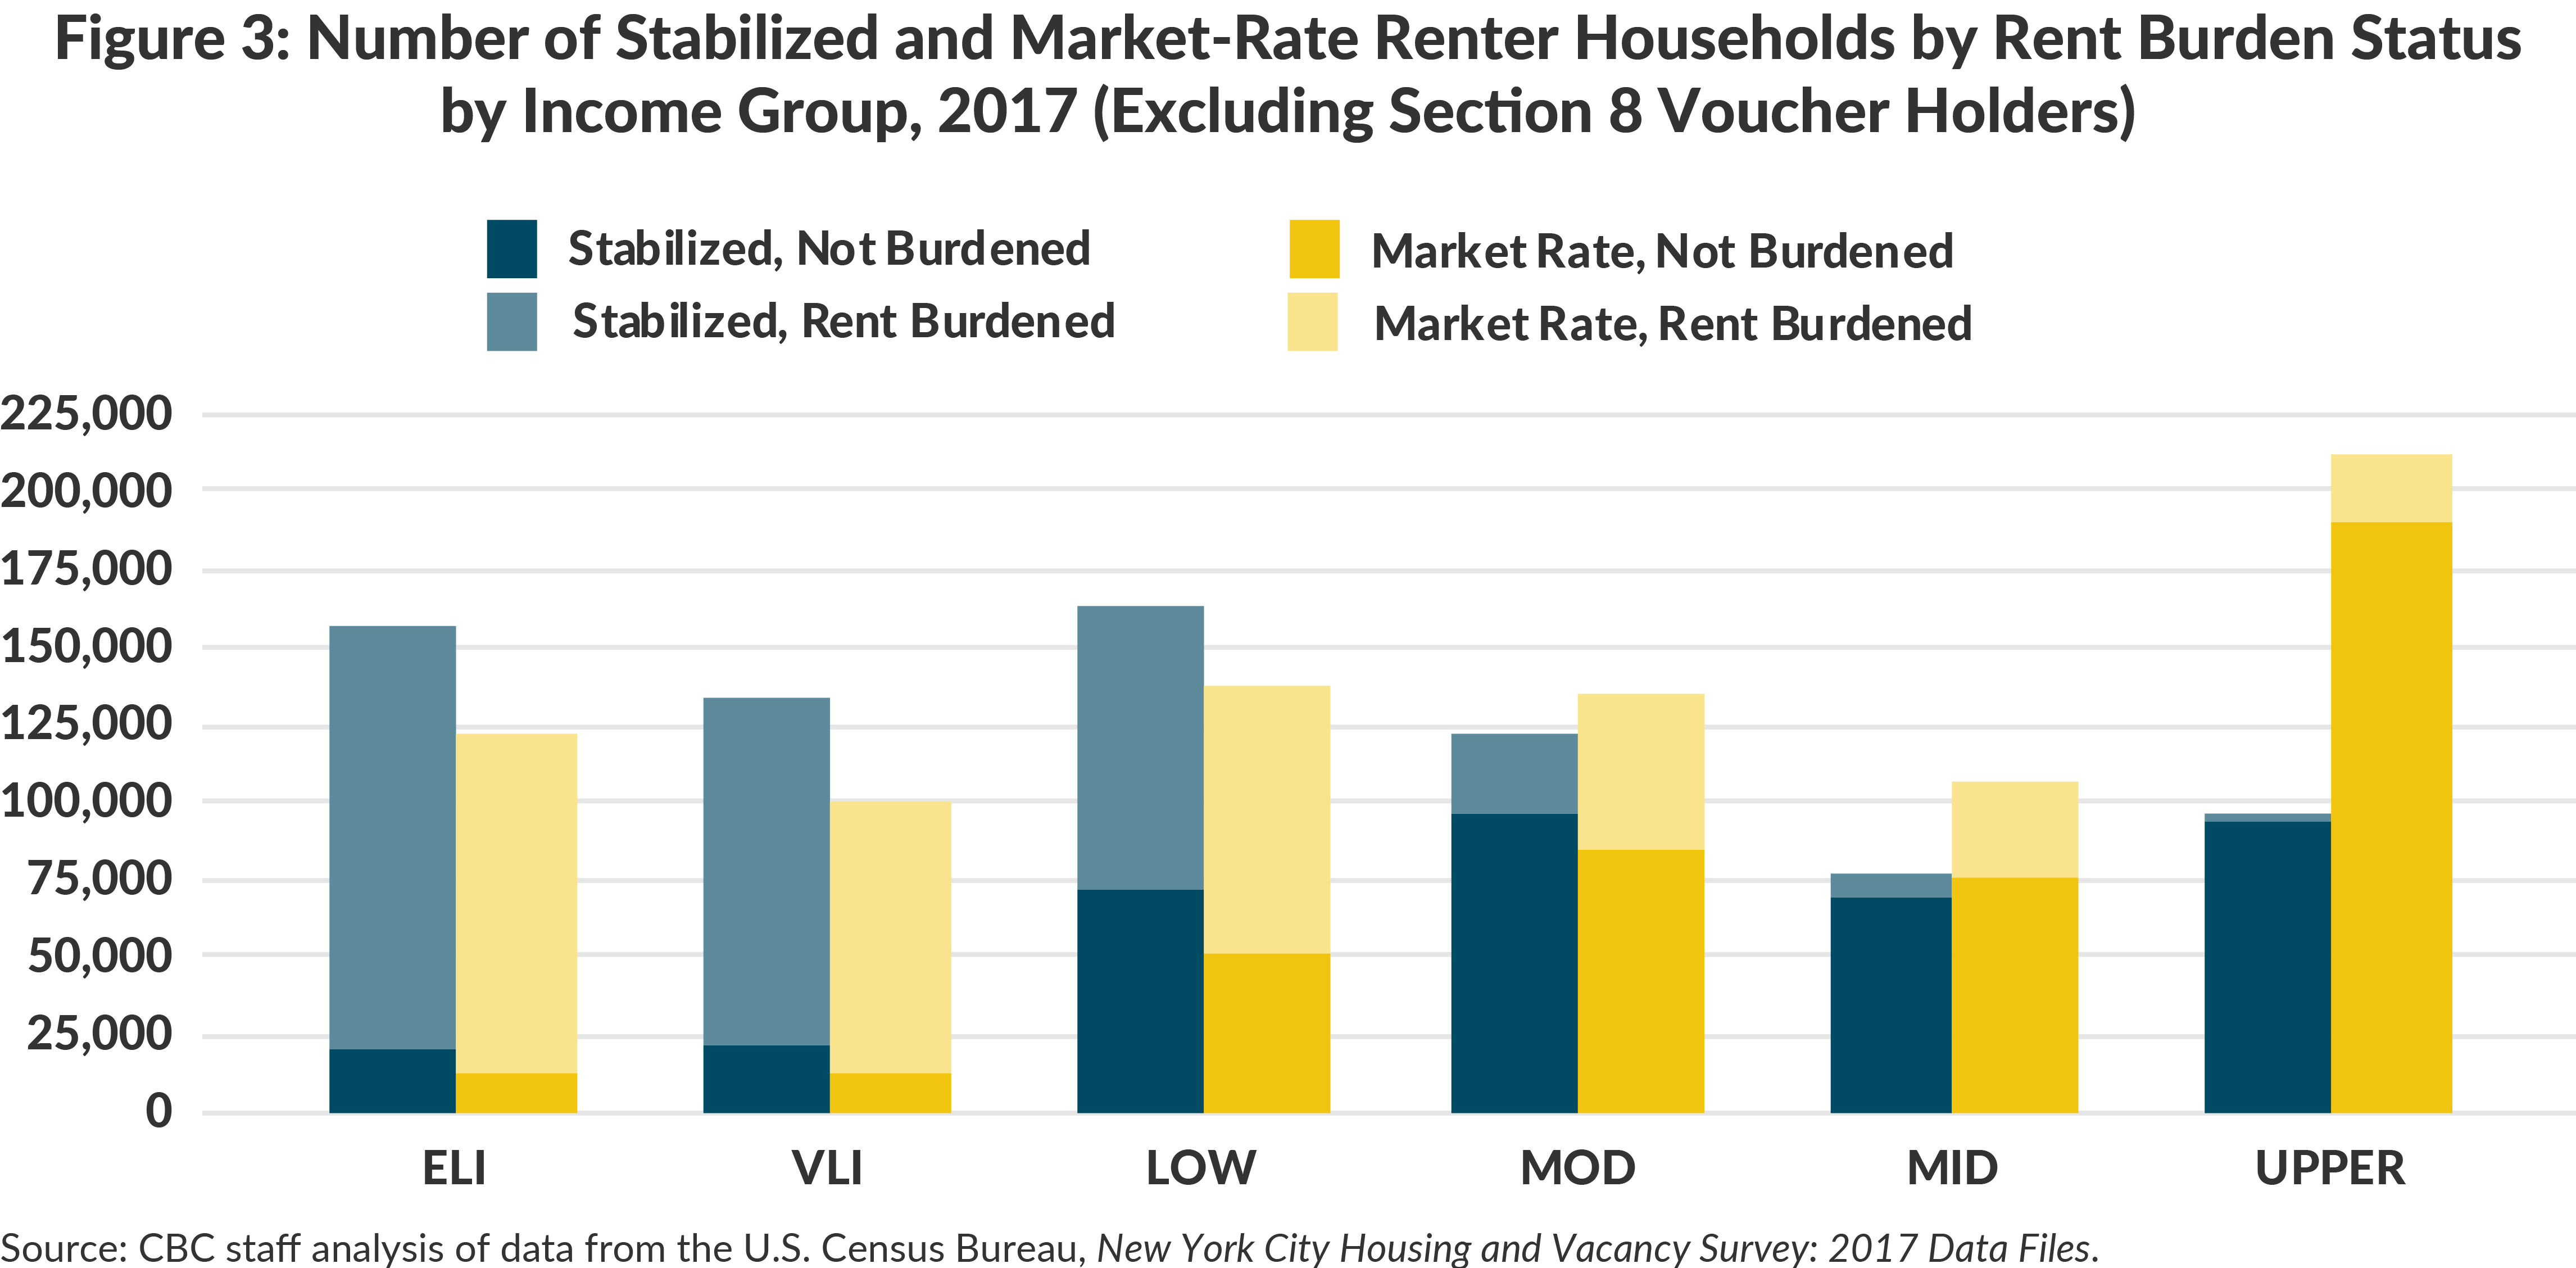 Figure 3: Number of Stabilized and Market-Rate Renter Households by Rent Burden Status by Income Group, 2017 (Excluding Section 8 Voucher Holders)